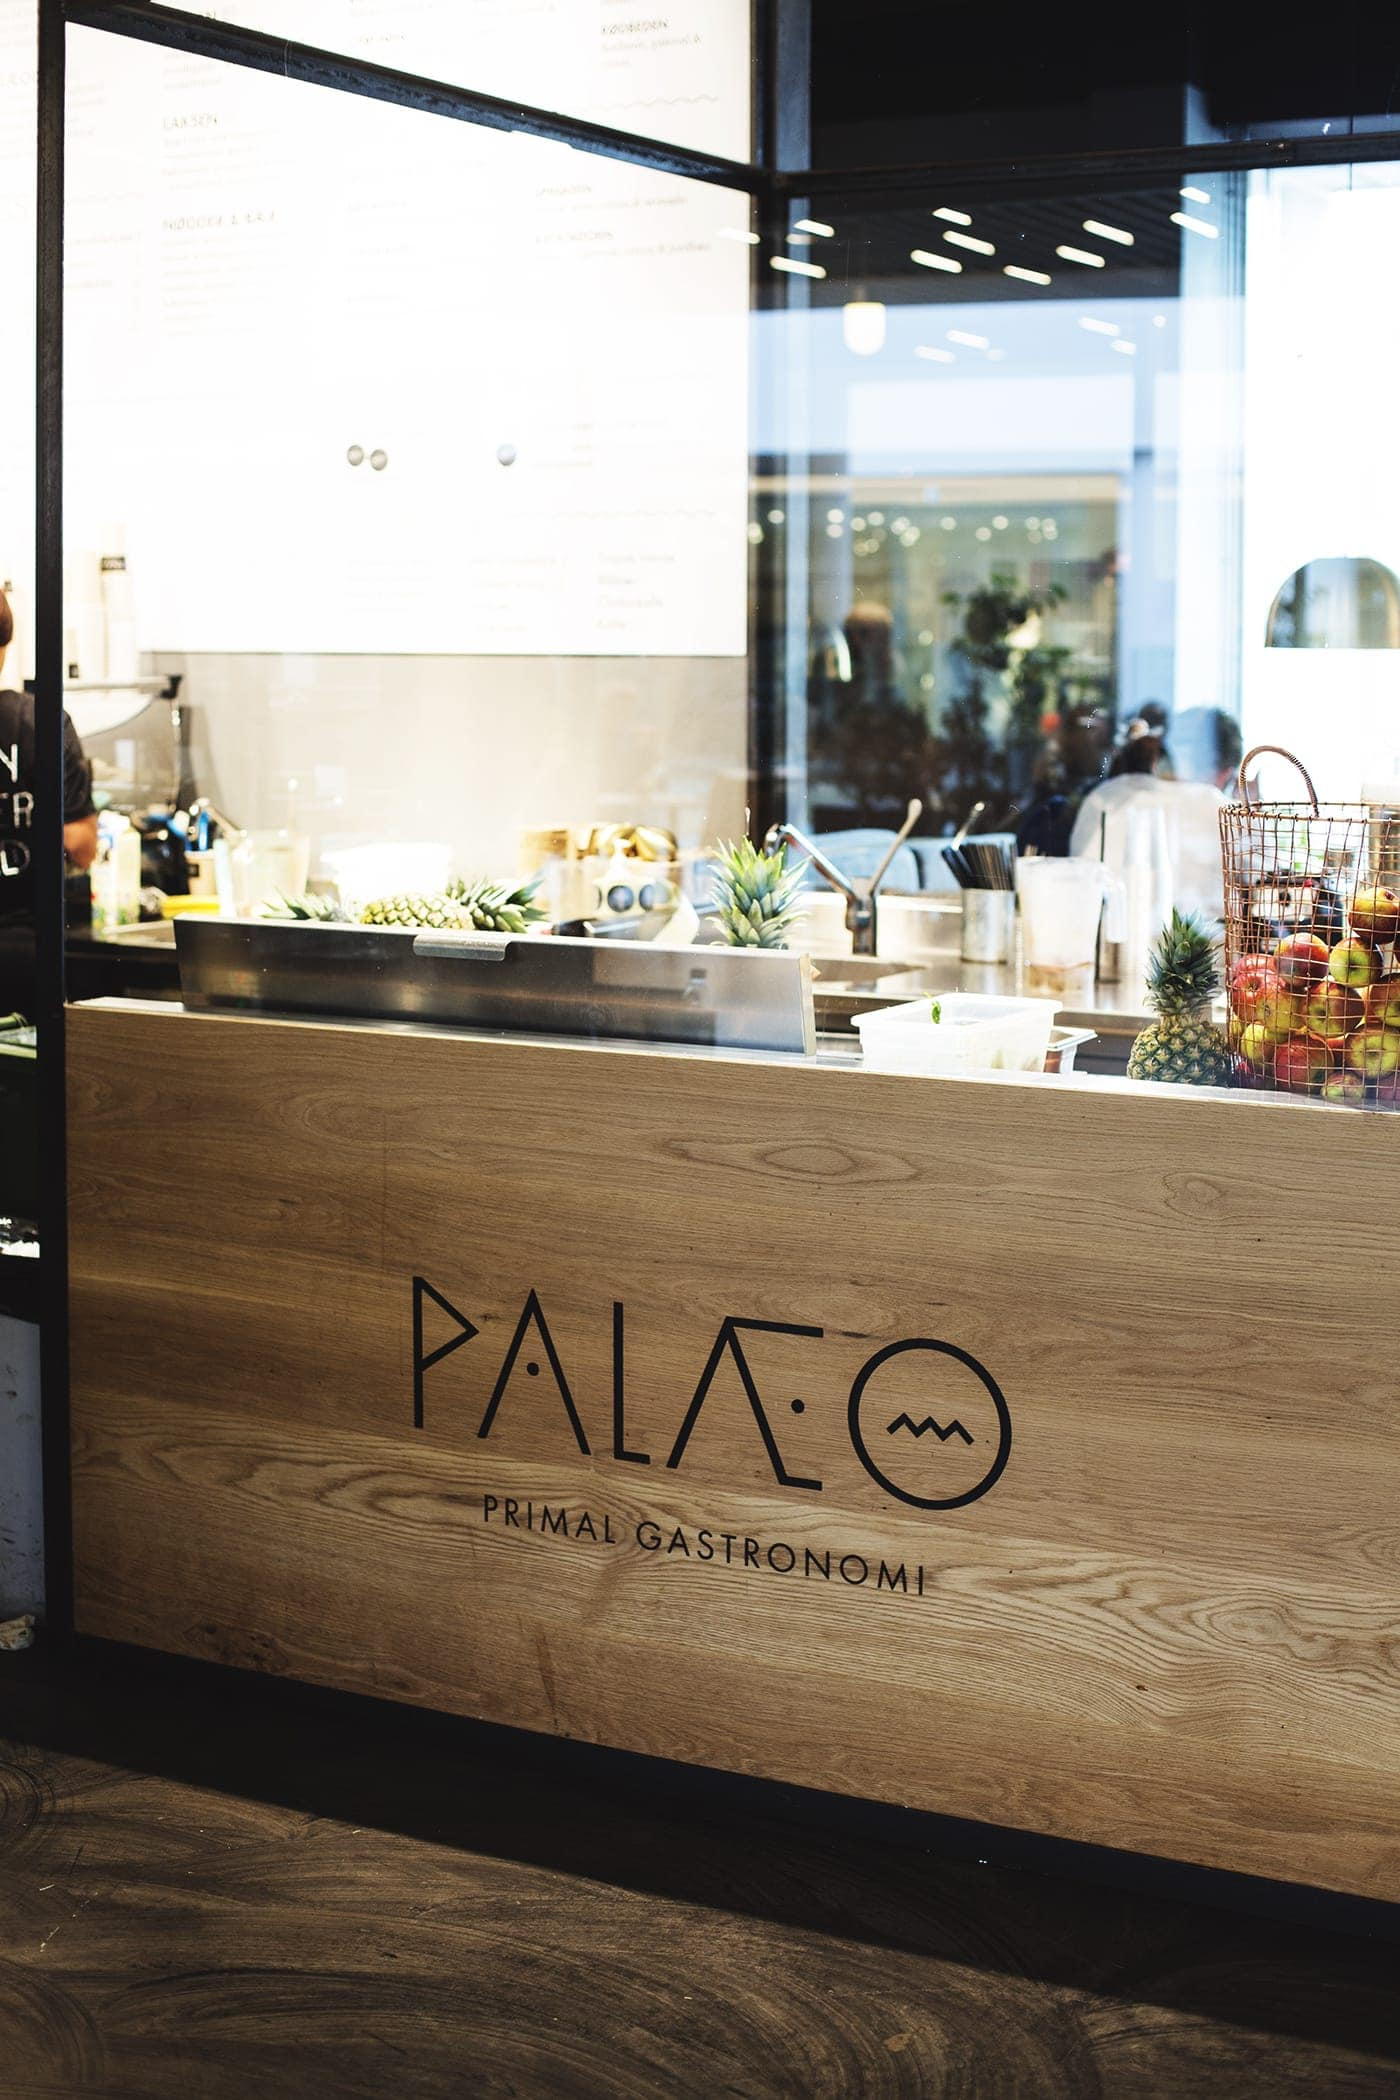 Copenhagen | wanderlust | paleo restaurants for dietary requirements